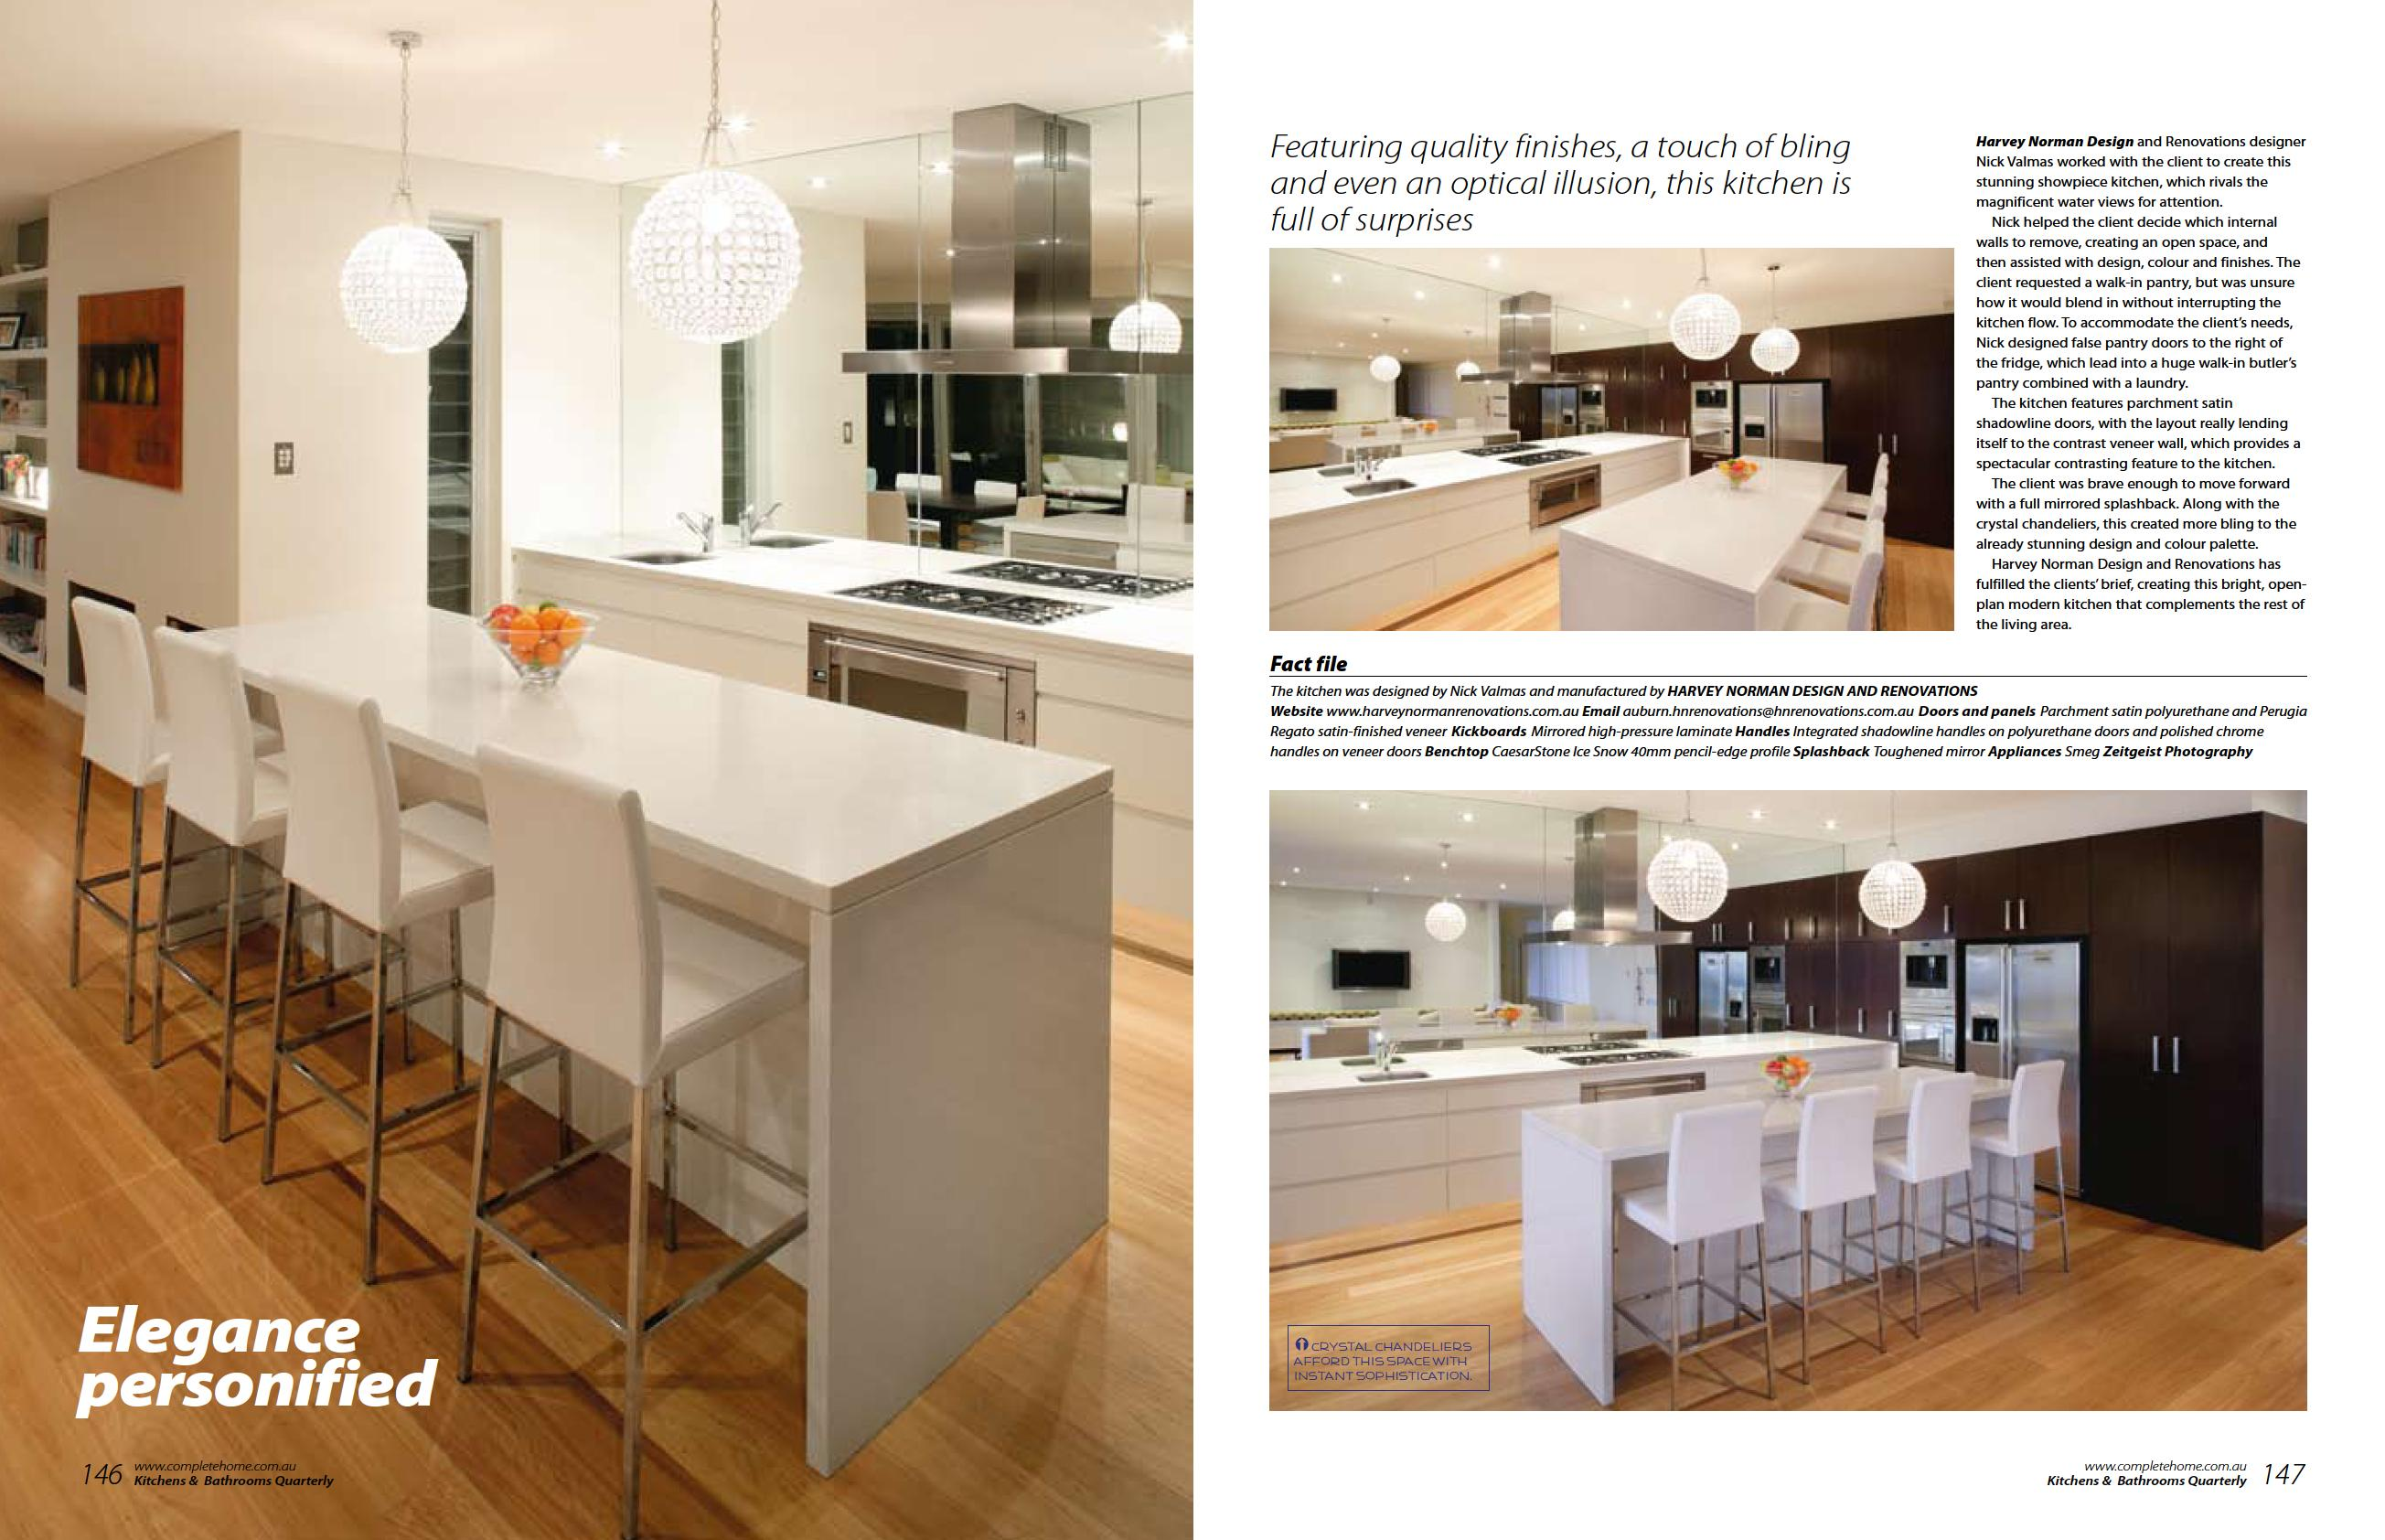 Kitchens & Bathrooms Quarterly - Elegance personified